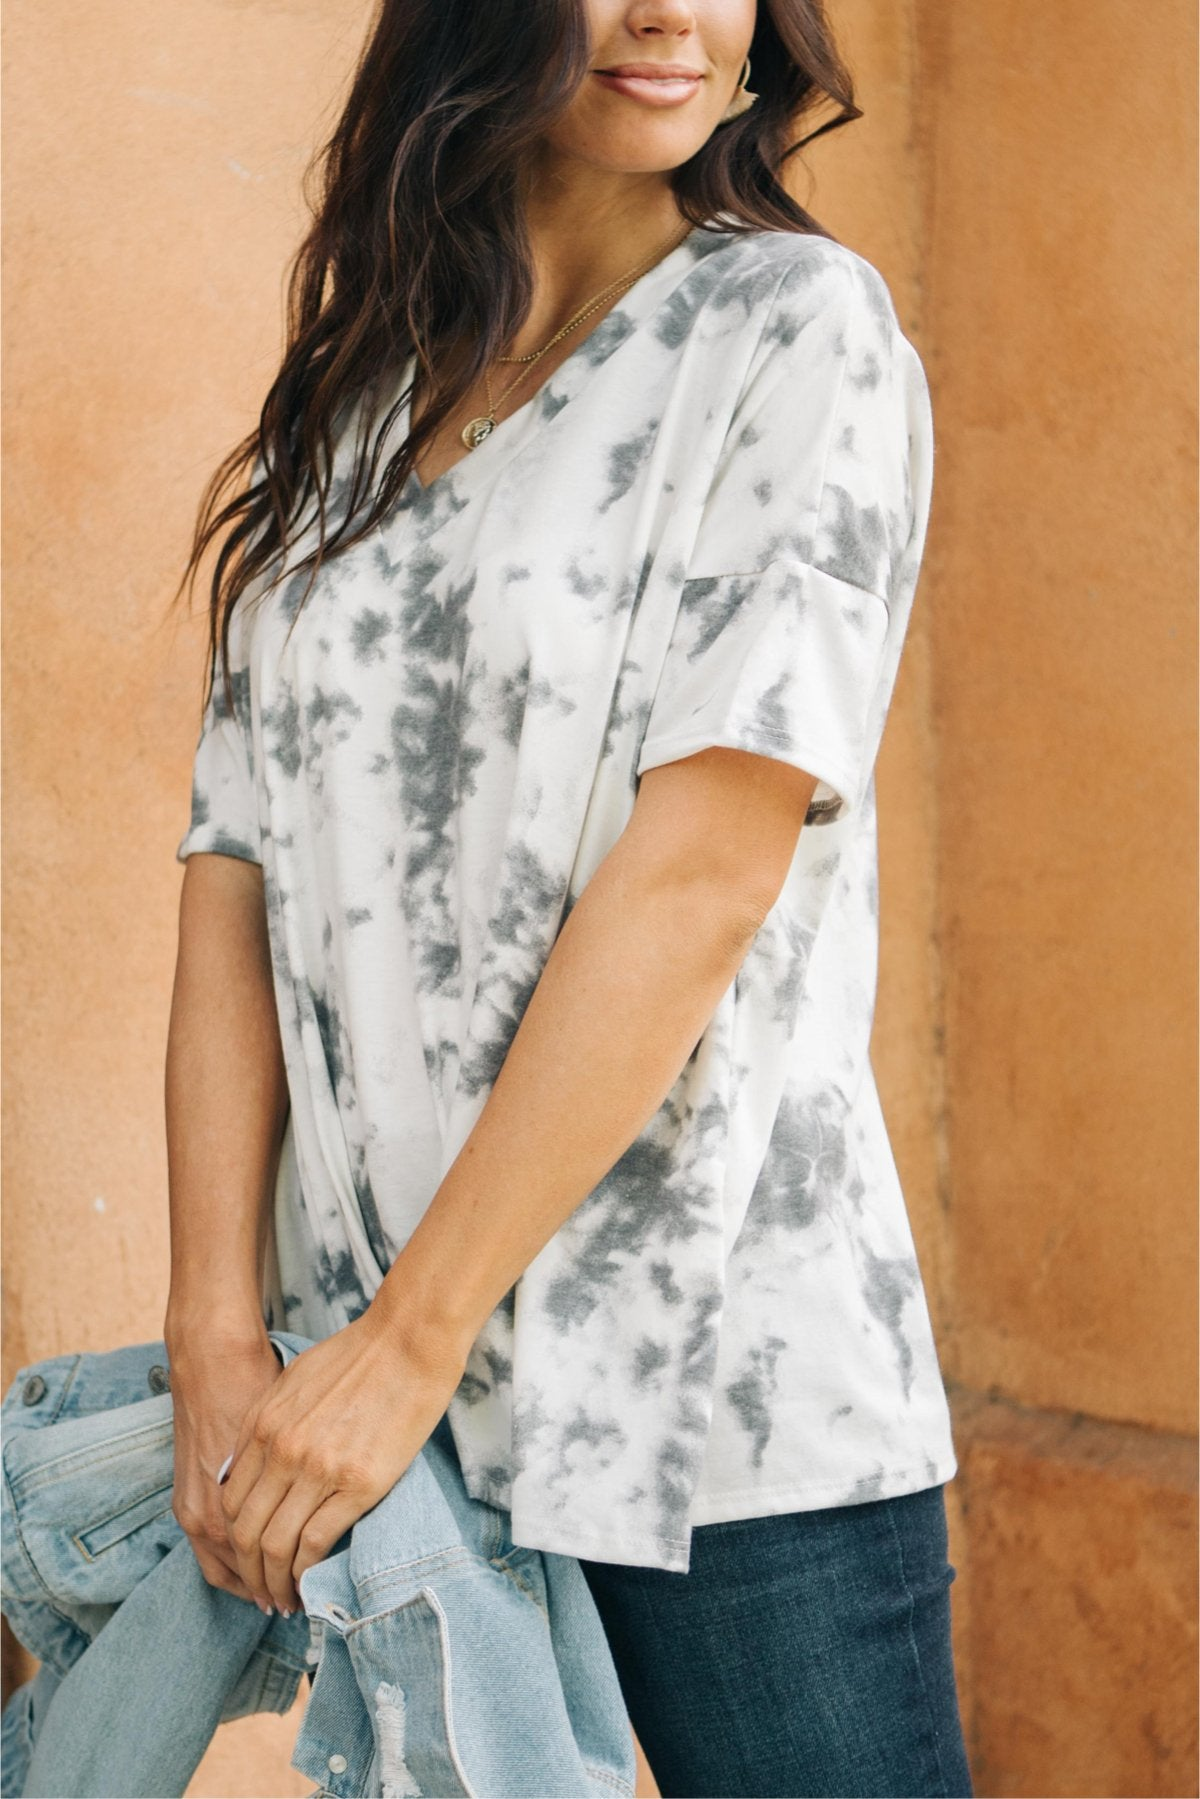 Light gray tie dye top